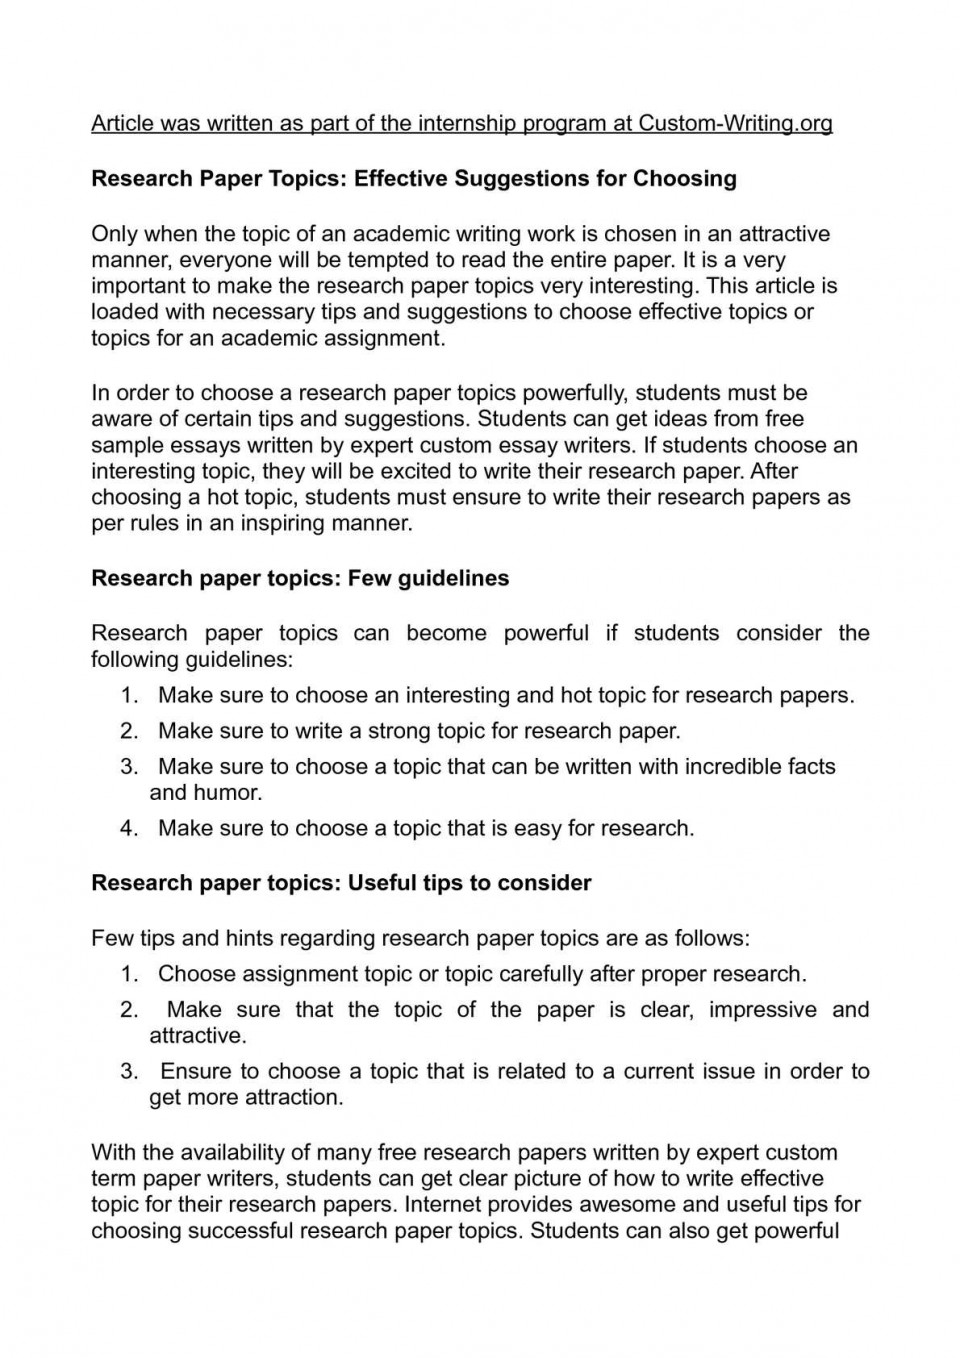 019 Research Paper Topics For Awful Interesting Papers High School In Physical Education College 960